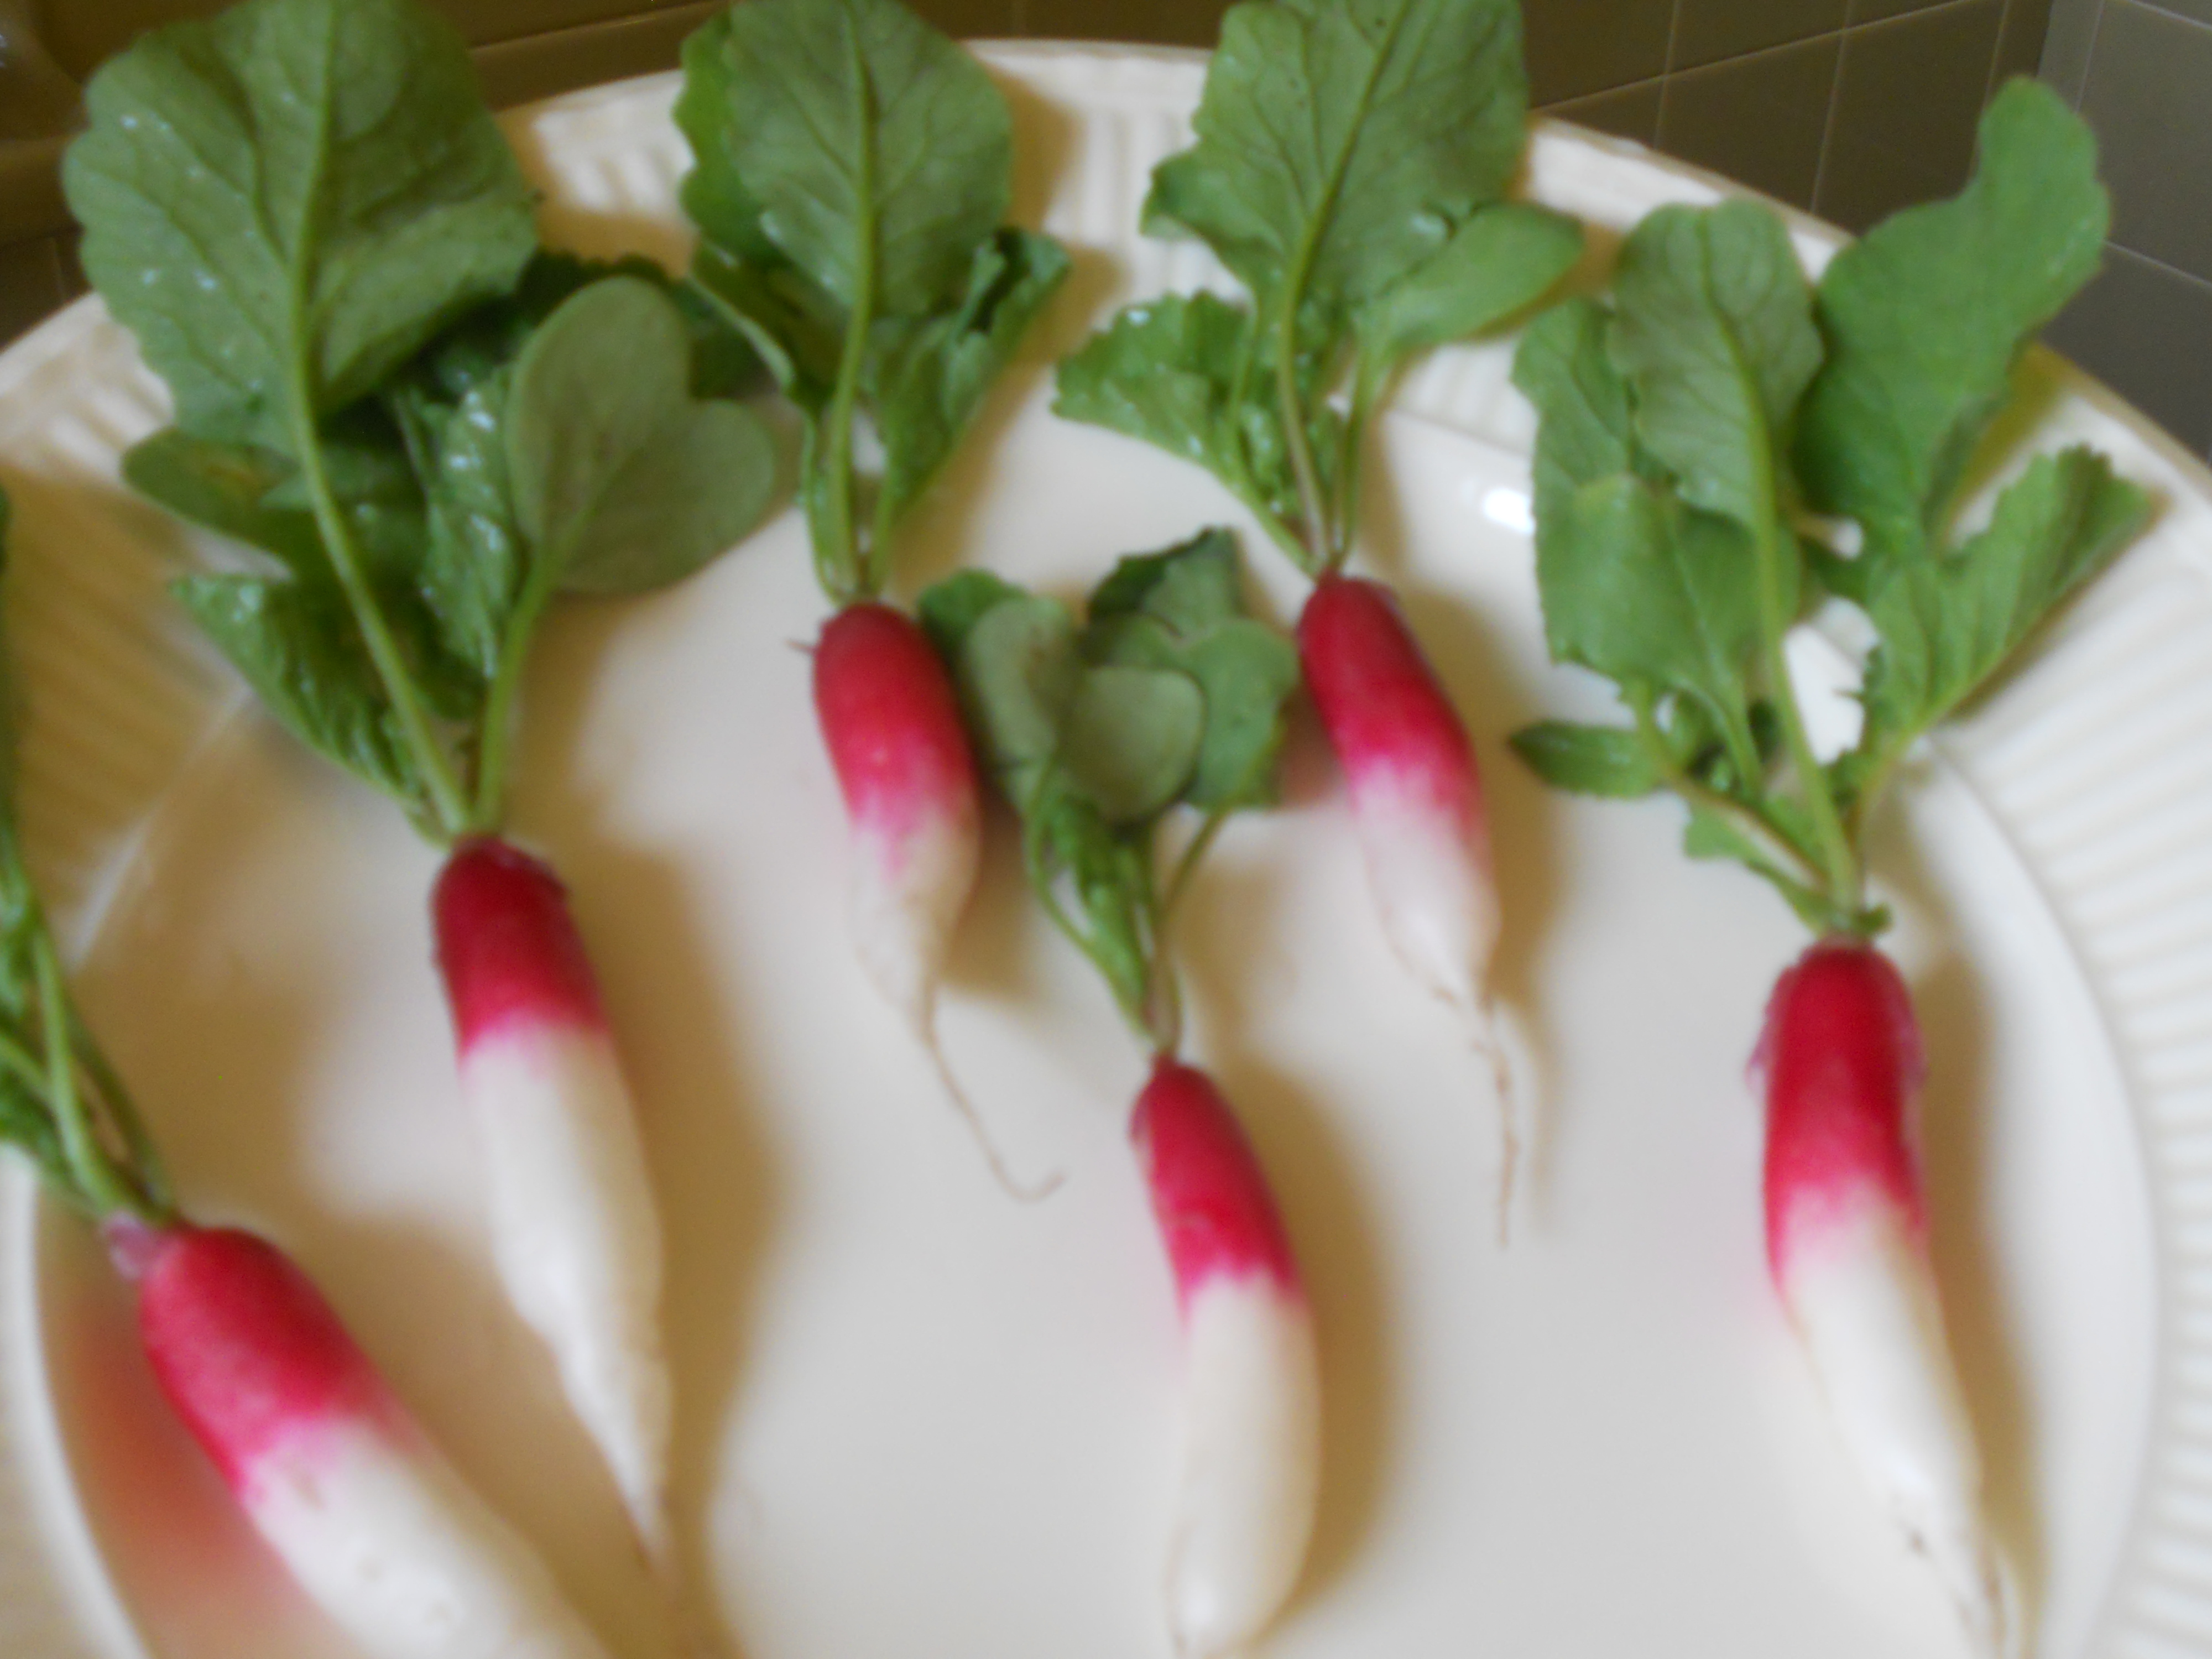 French Breakfast Radishes for Cedric Maxwell